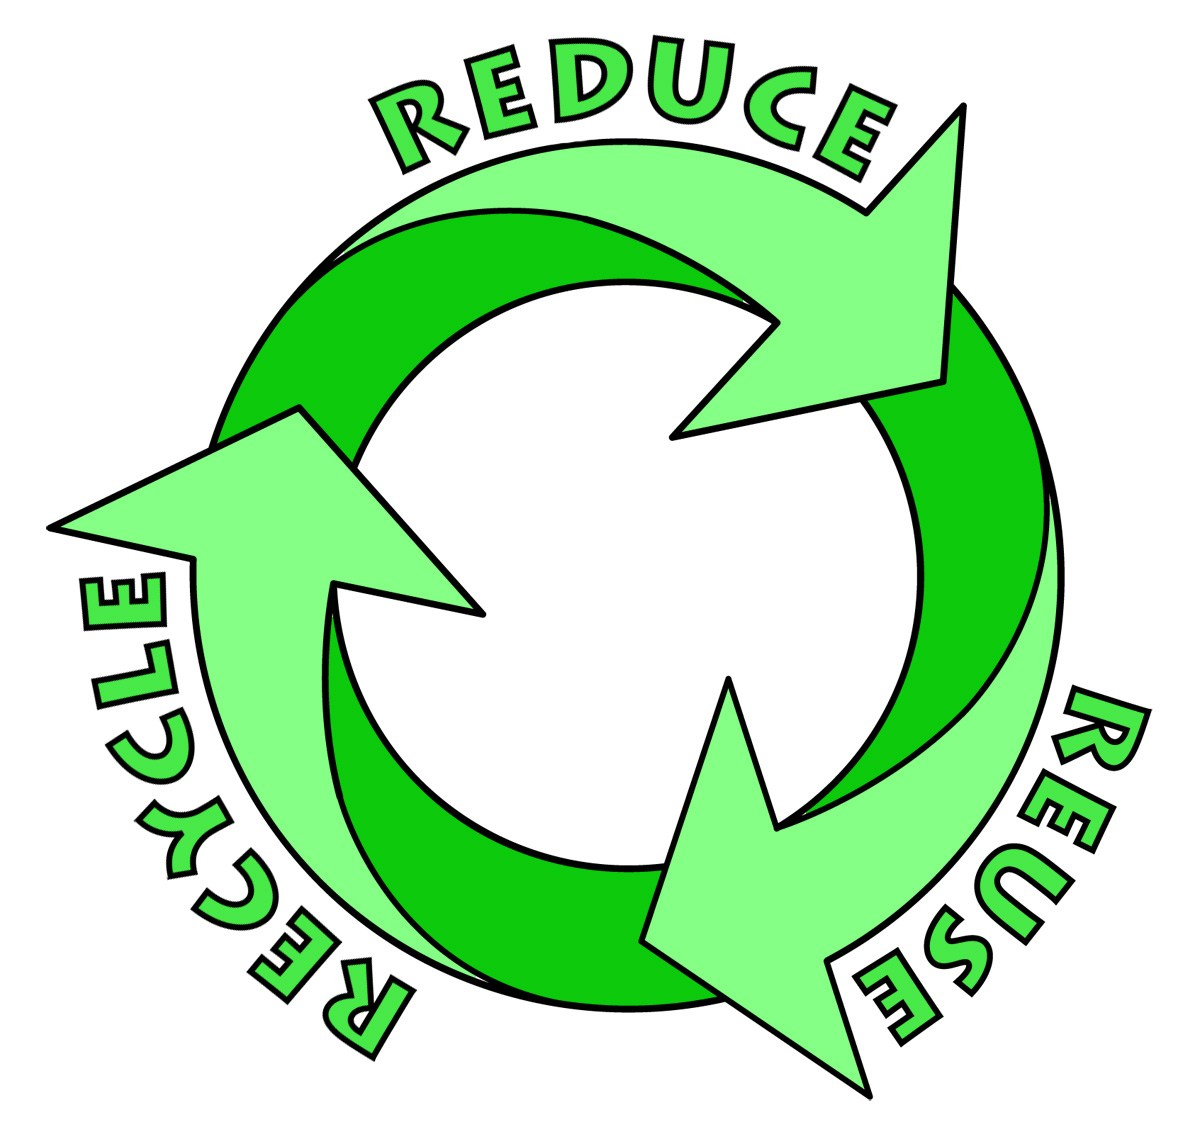 Reduce reuse recycle clipart image freeuse library Reduce reuse recycle clipart 2 » Clipart Portal image freeuse library